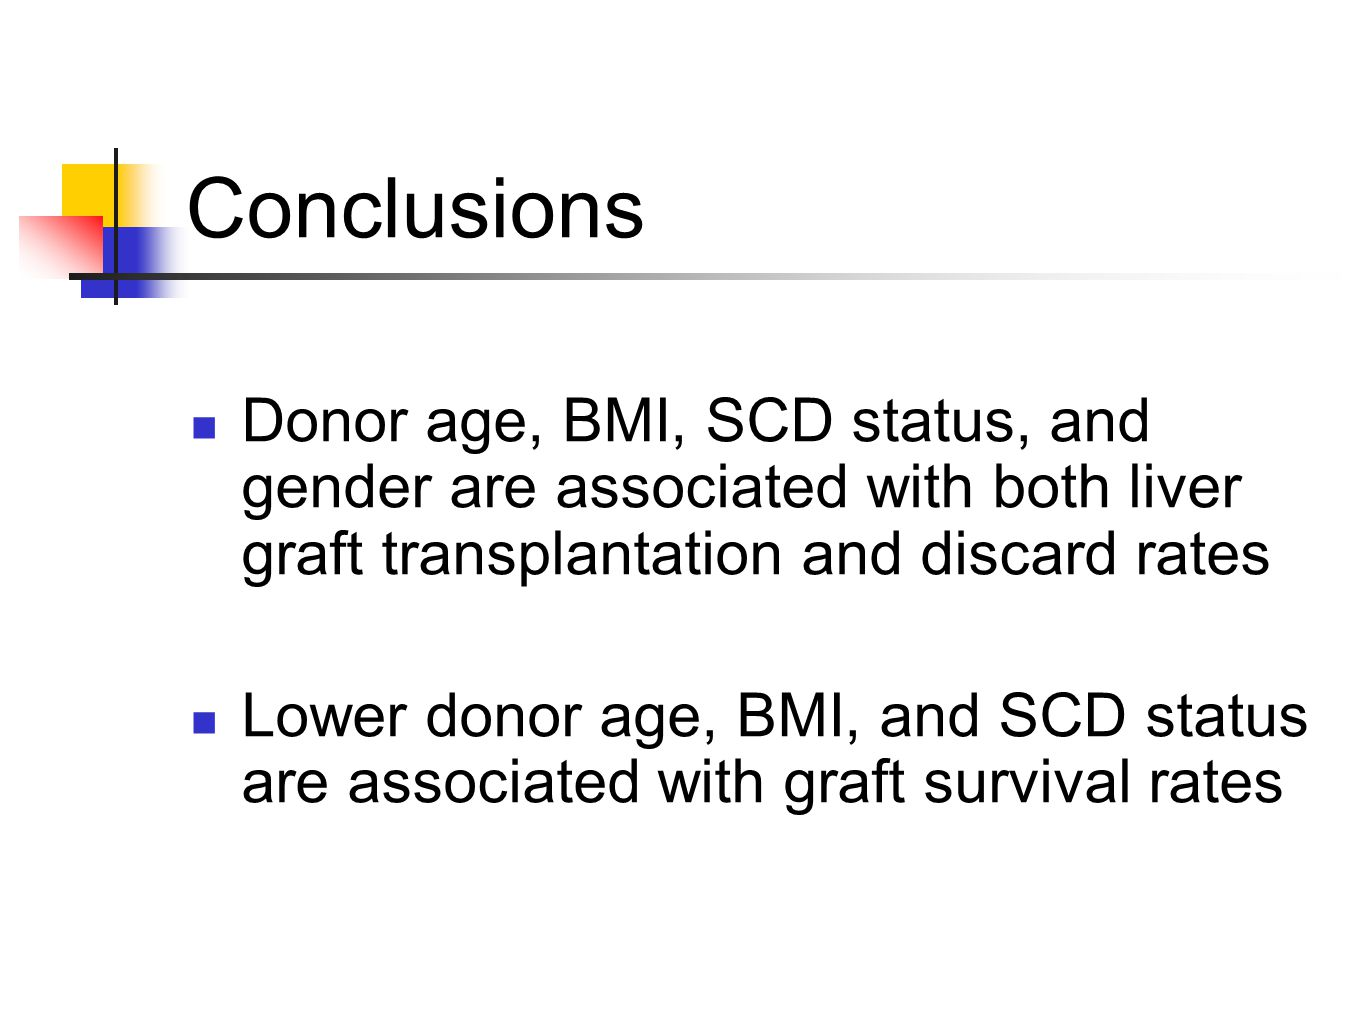 Conclusions Donor age, BMI, SCD status, and gender are associated with both liver graft transplantation and discard rates.